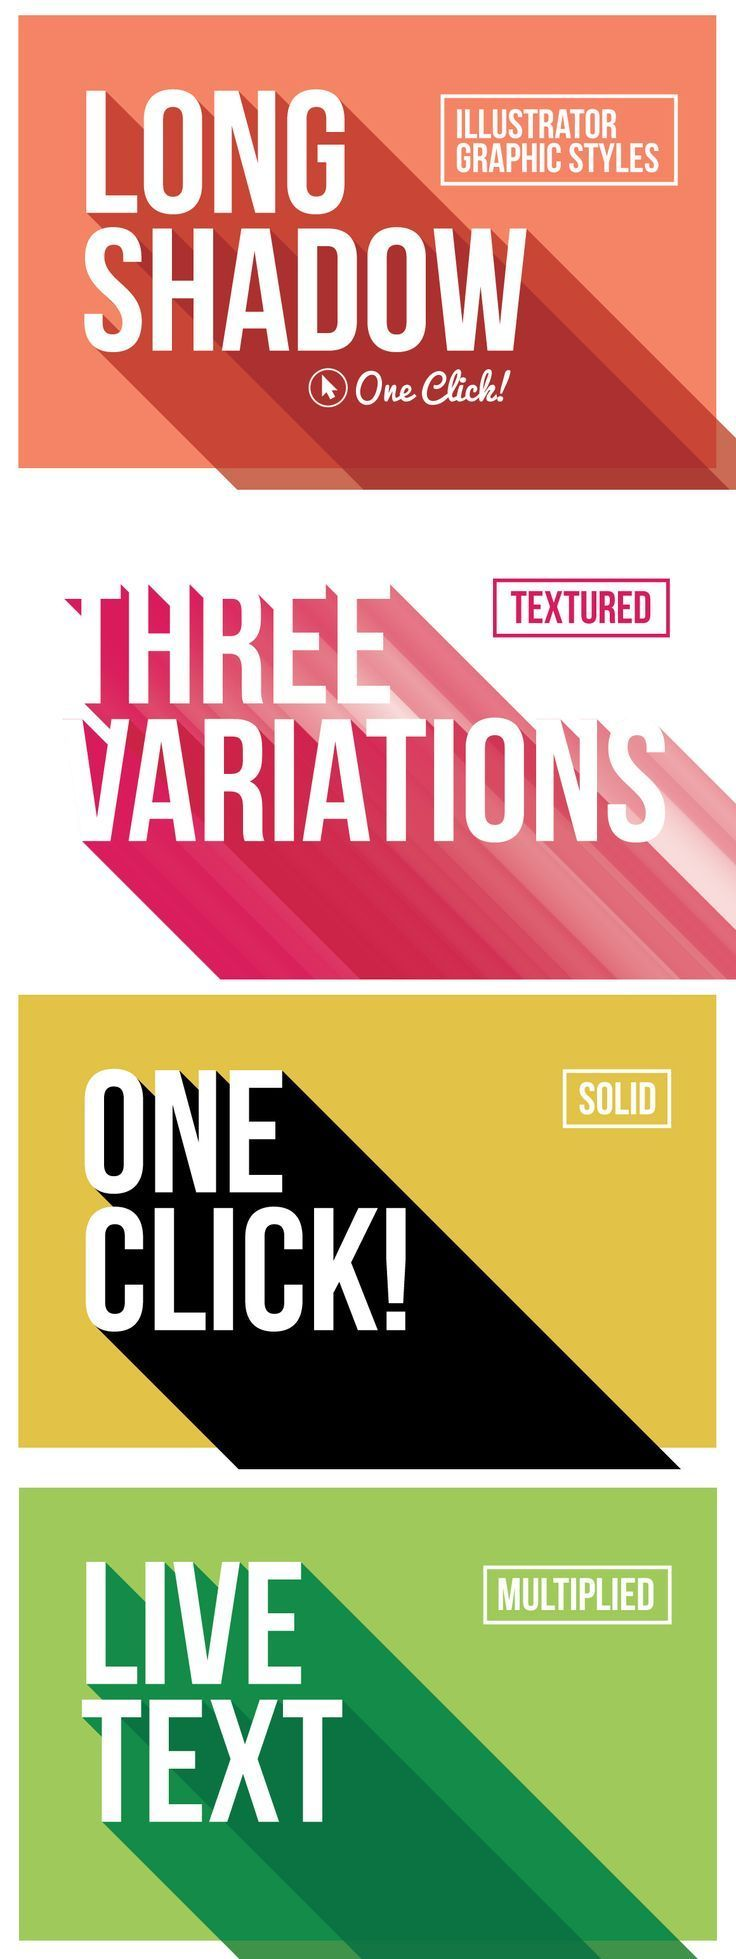 20 best images about motif long shadow on pinterest - Text banner design ...